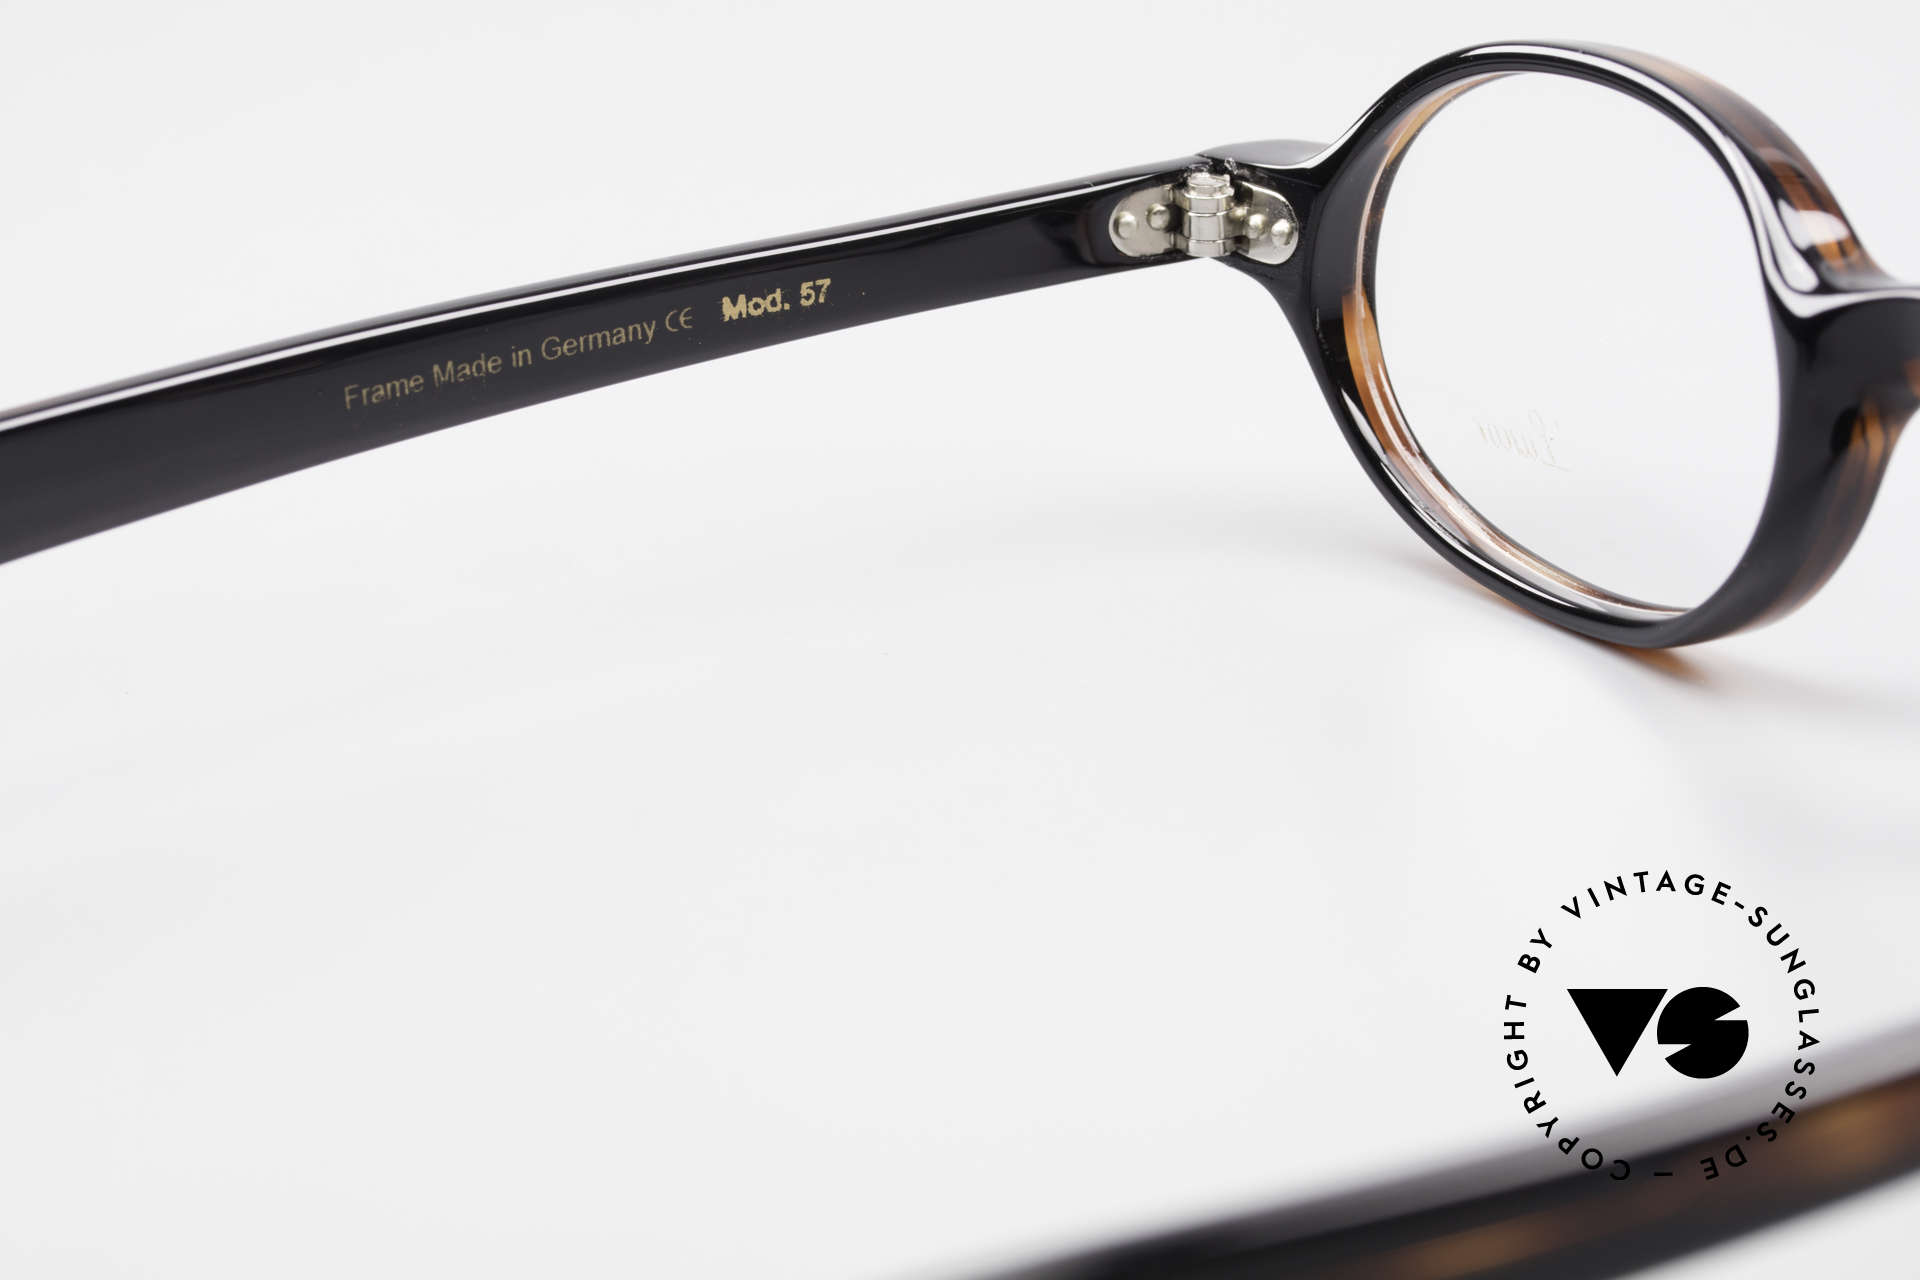 Lunor A57 Oval Lunor Acetate Glasses, the demo lenses can be replaced with optical (sun) lenses, Made for Men and Women